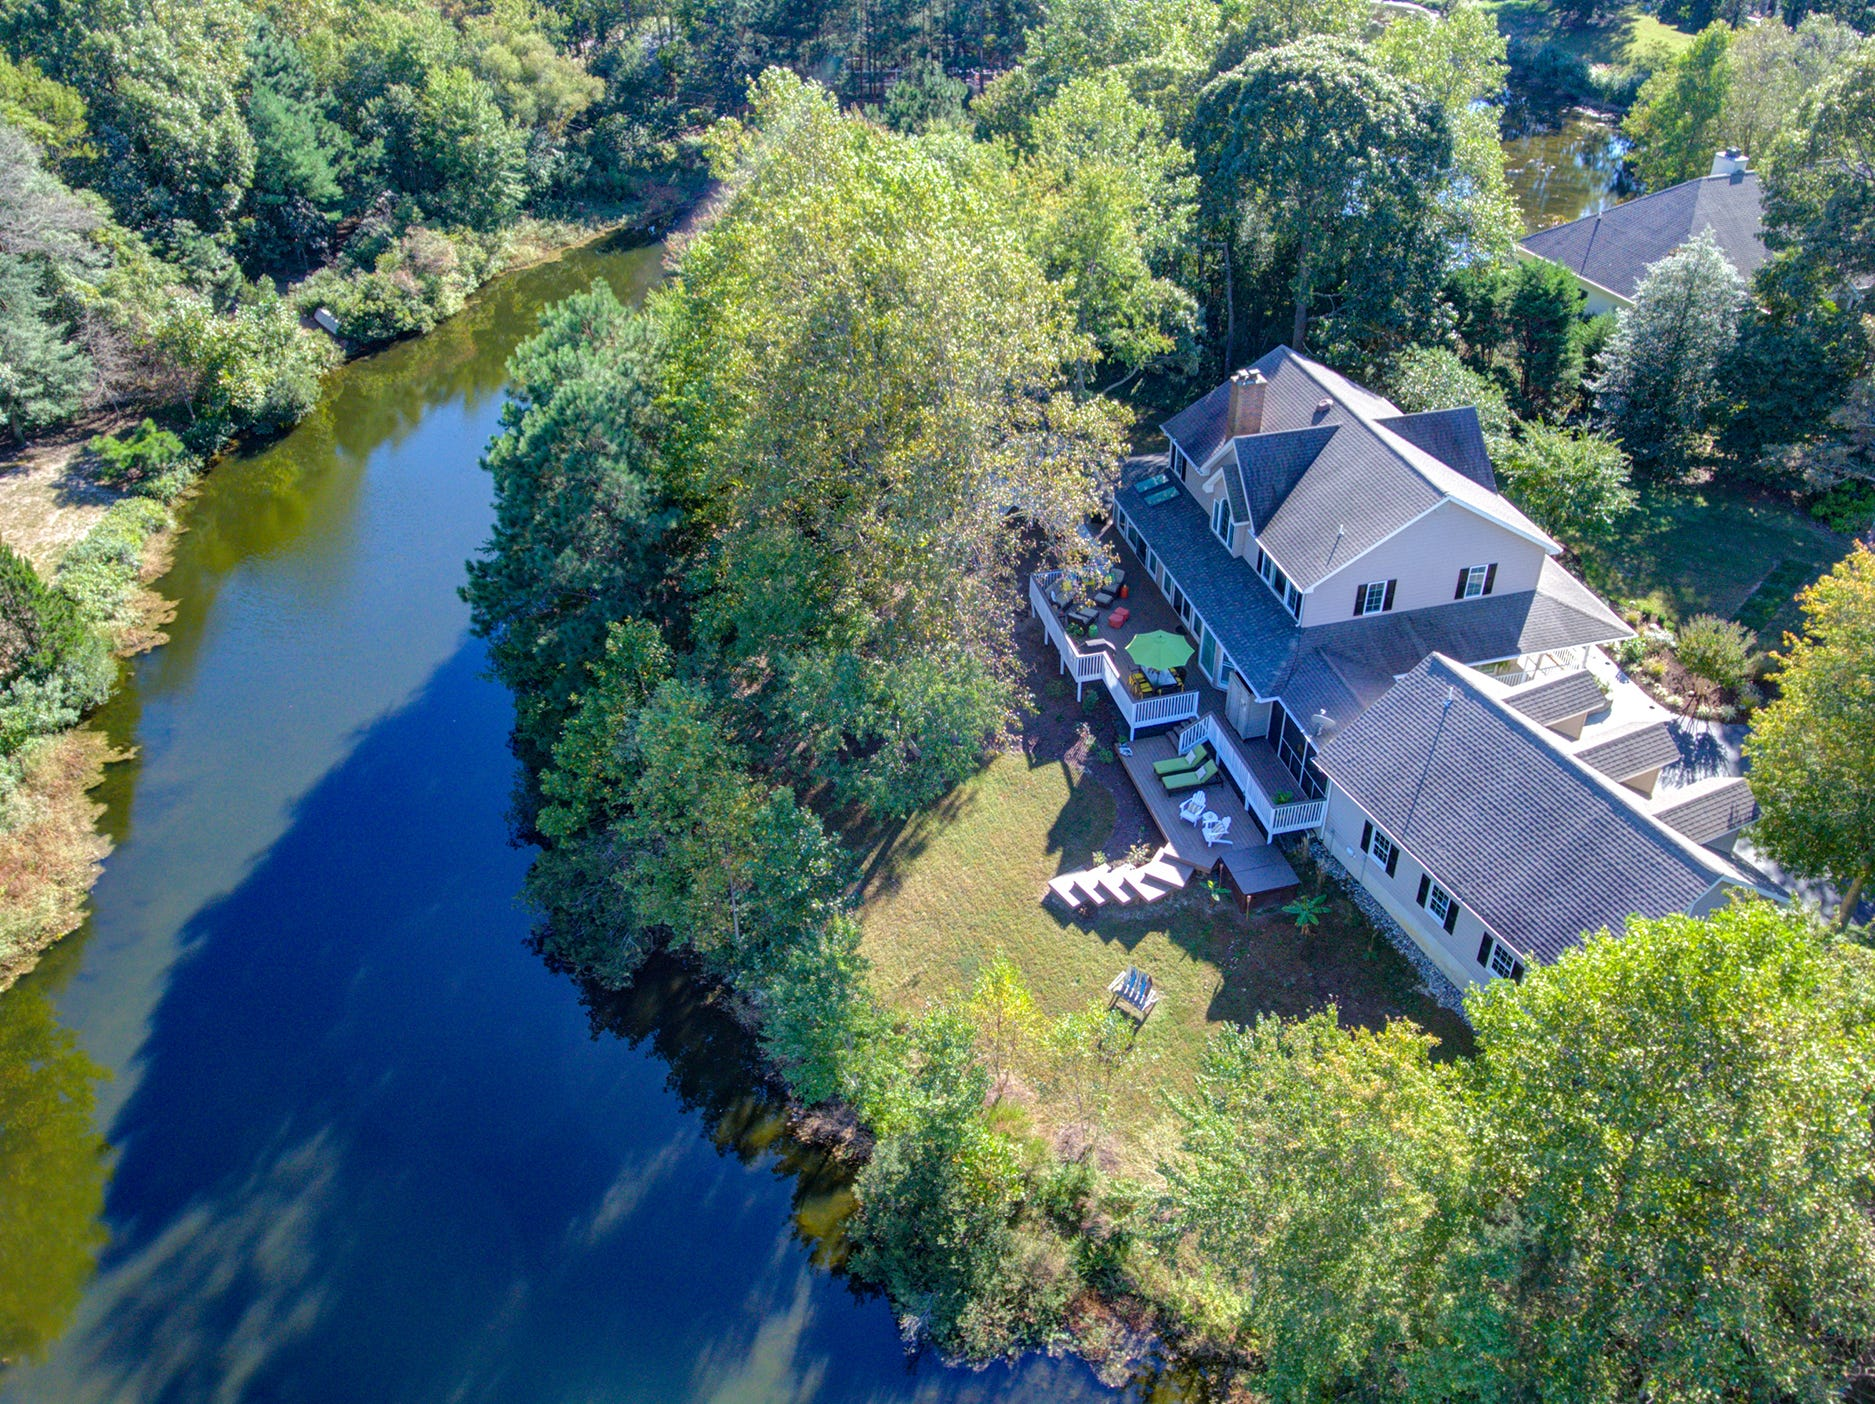 The house at 204 Lakeview Shores in Rehoboth Beach backs up to a pond, one of several in the community on Holland Glade.